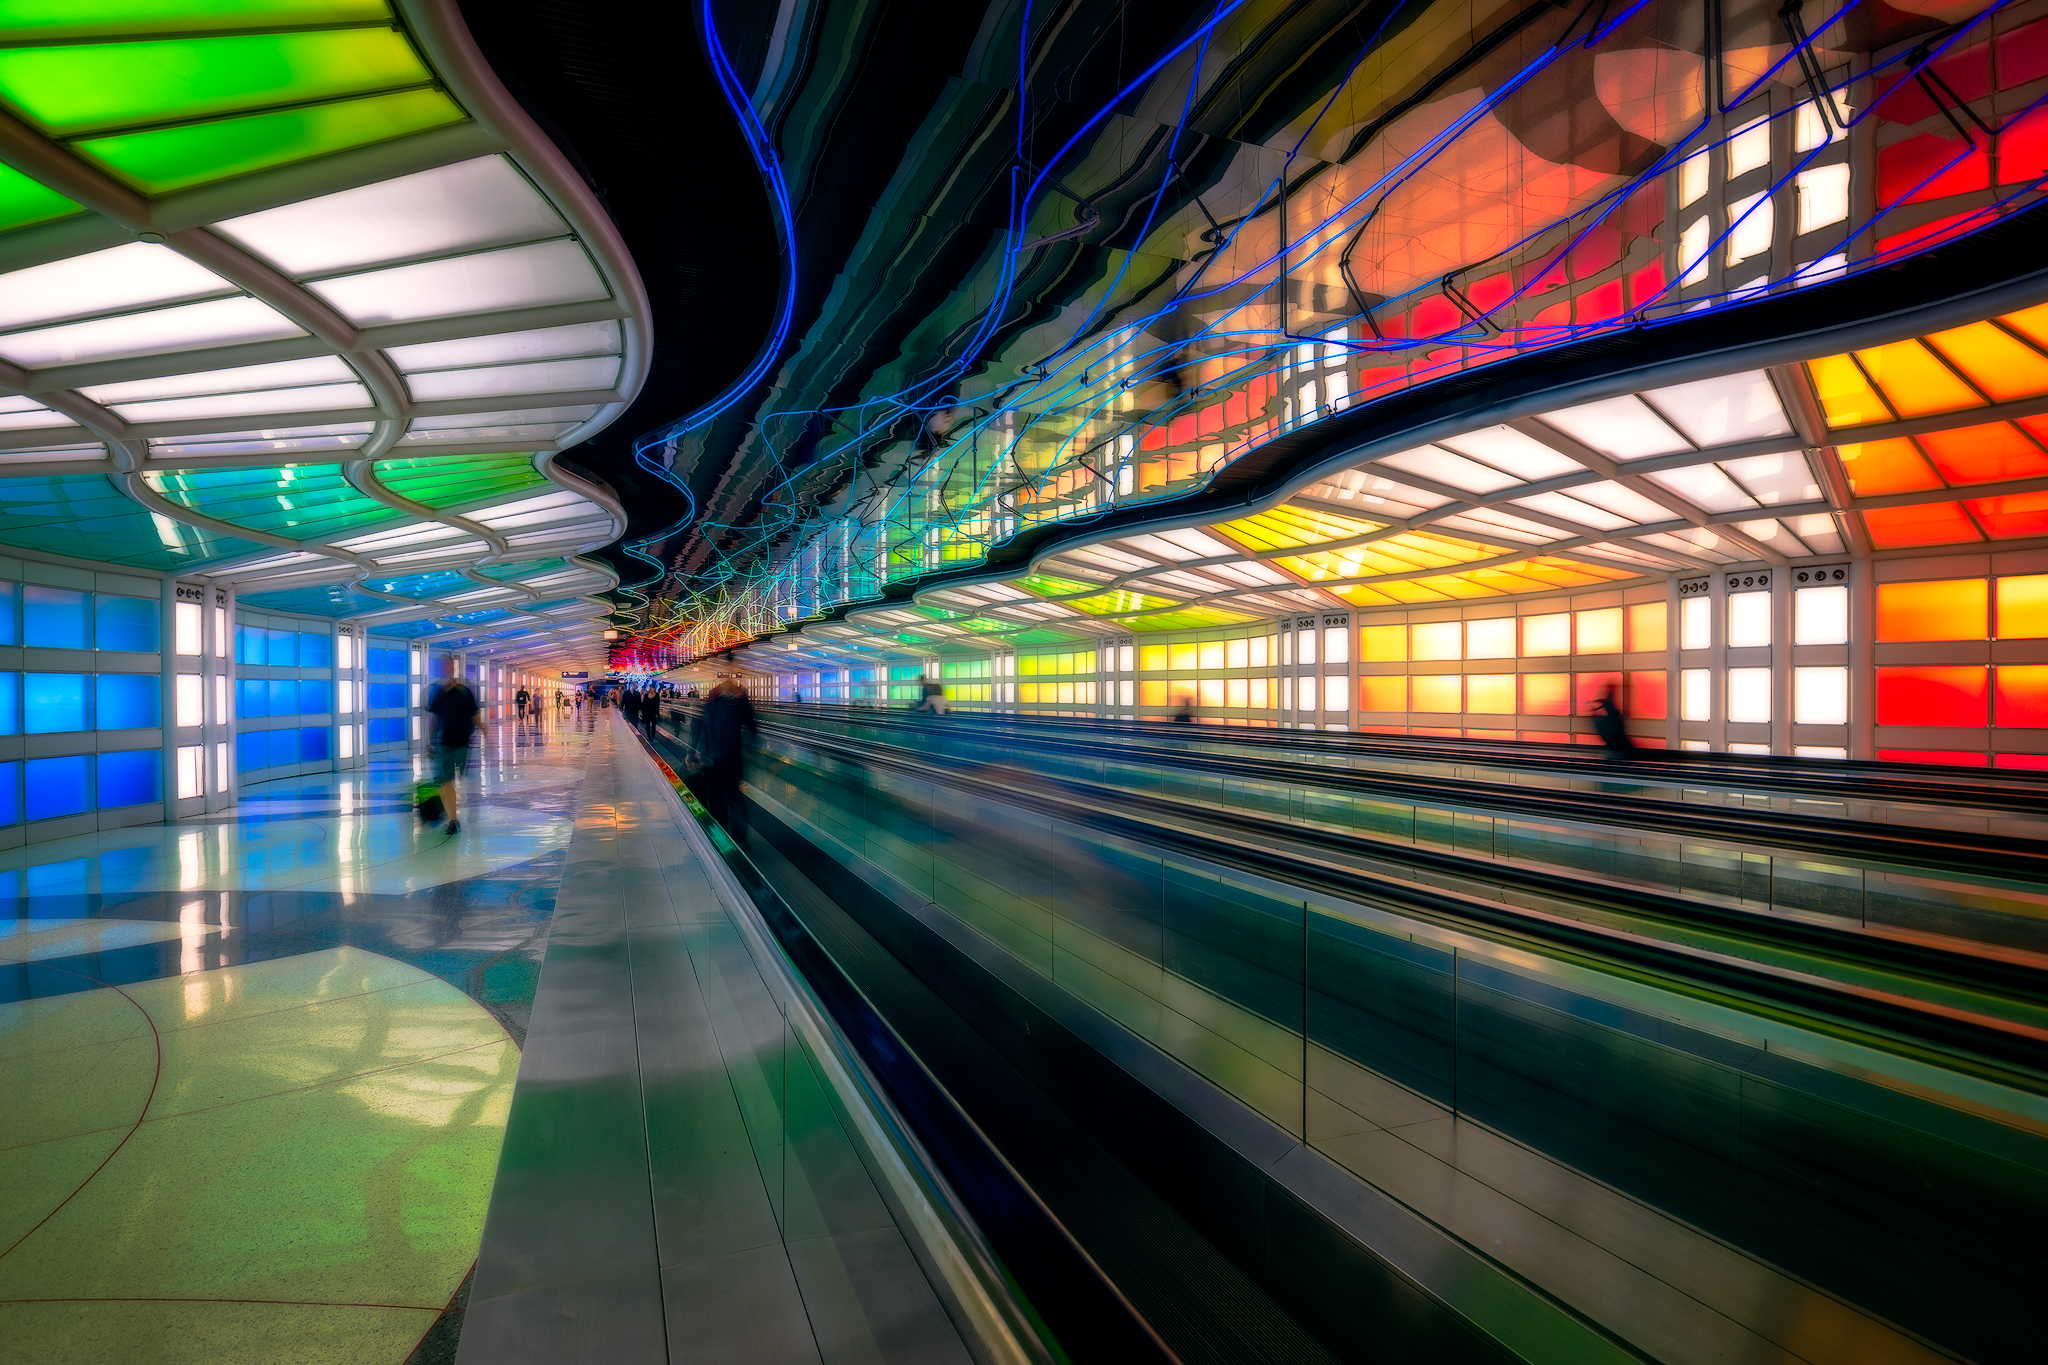 Sky's the Limit by Michael Hayden - O'Hare International Airport - Terminal 1 between concourse B and C